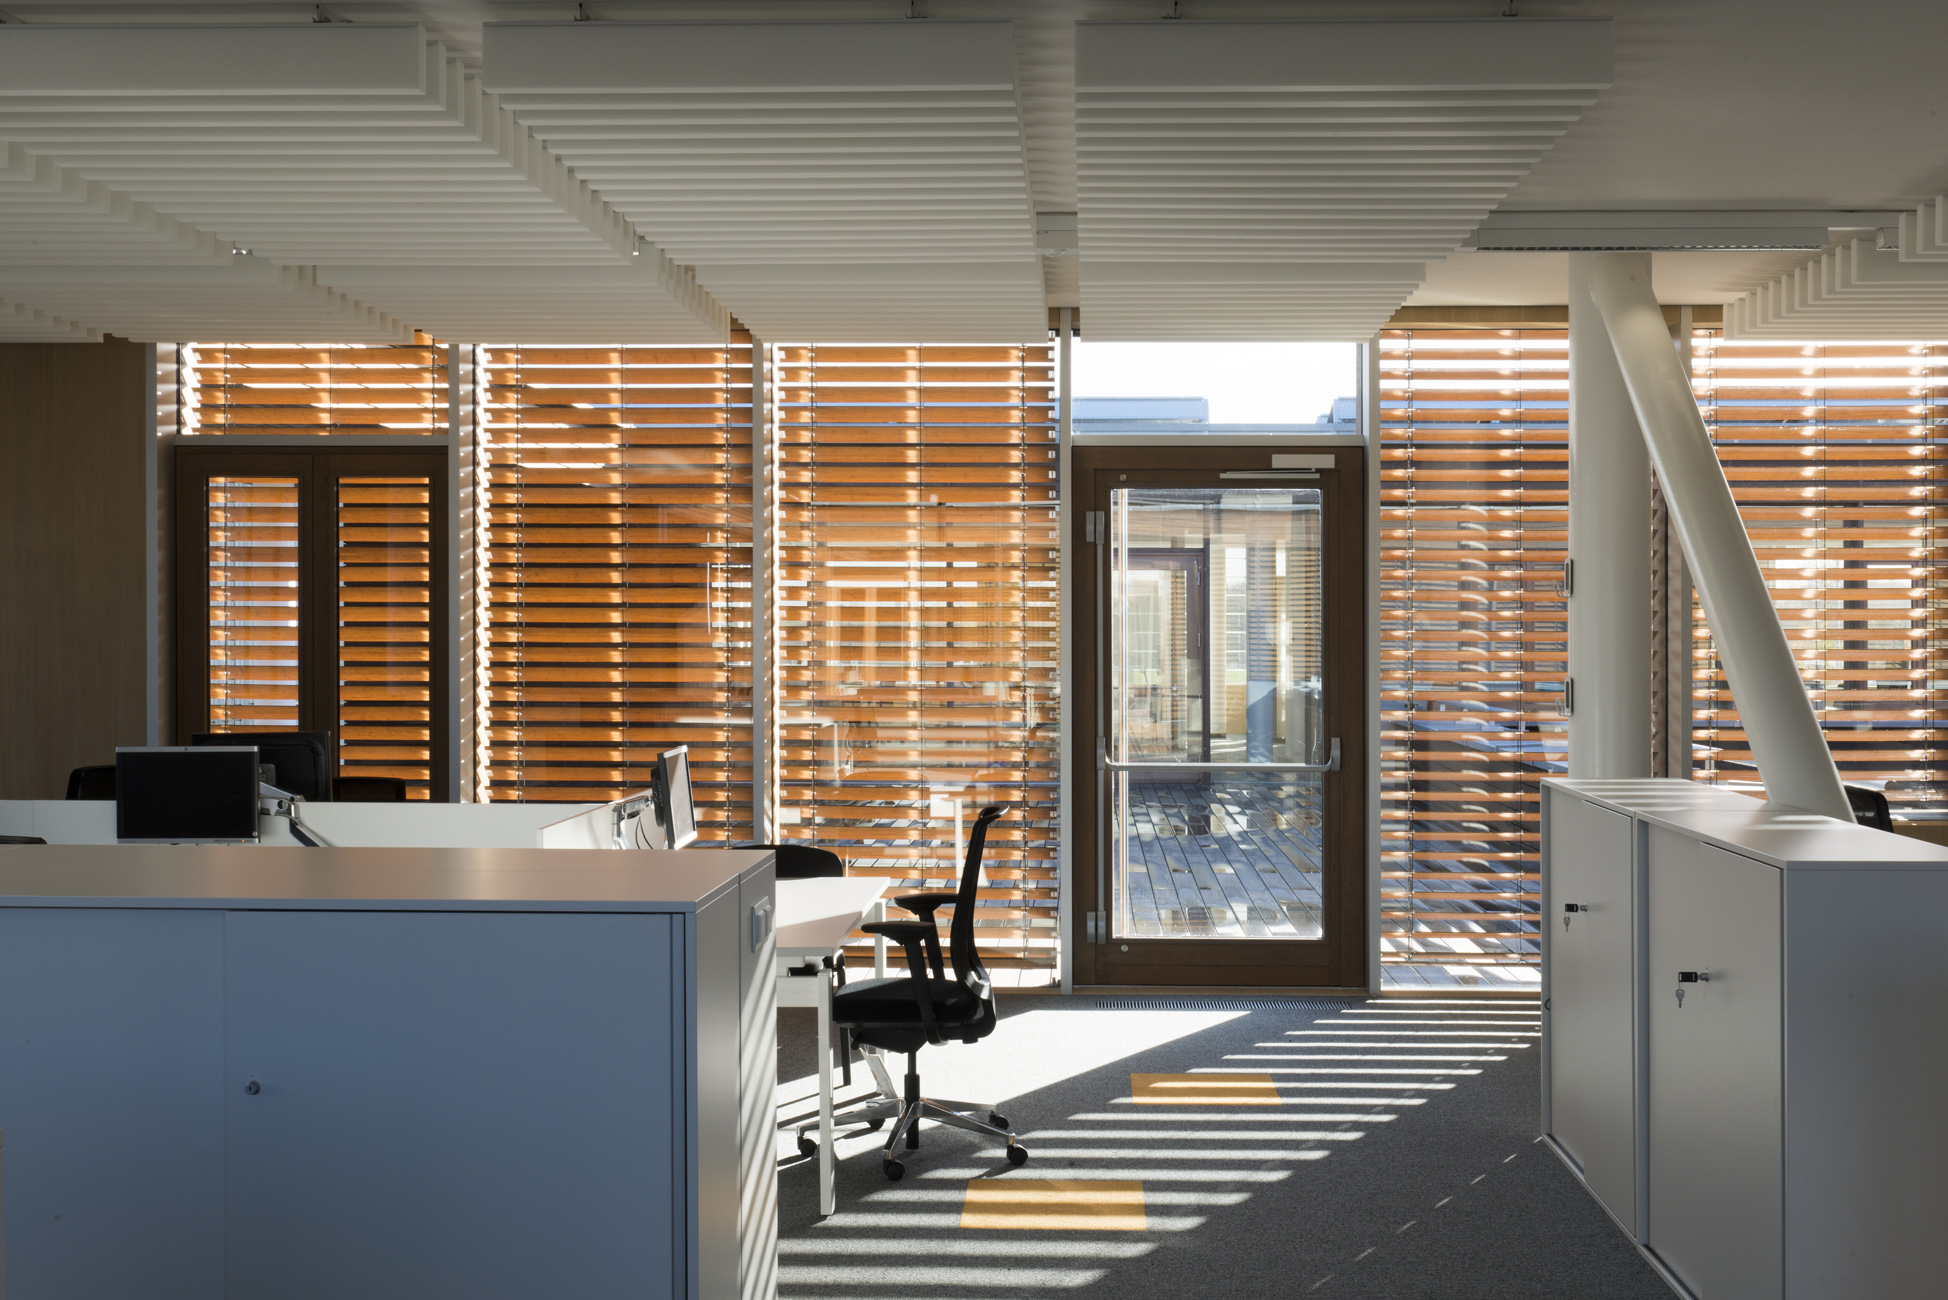 Exterior Wooden Venetian Blinds On Thin Stretchers [583]